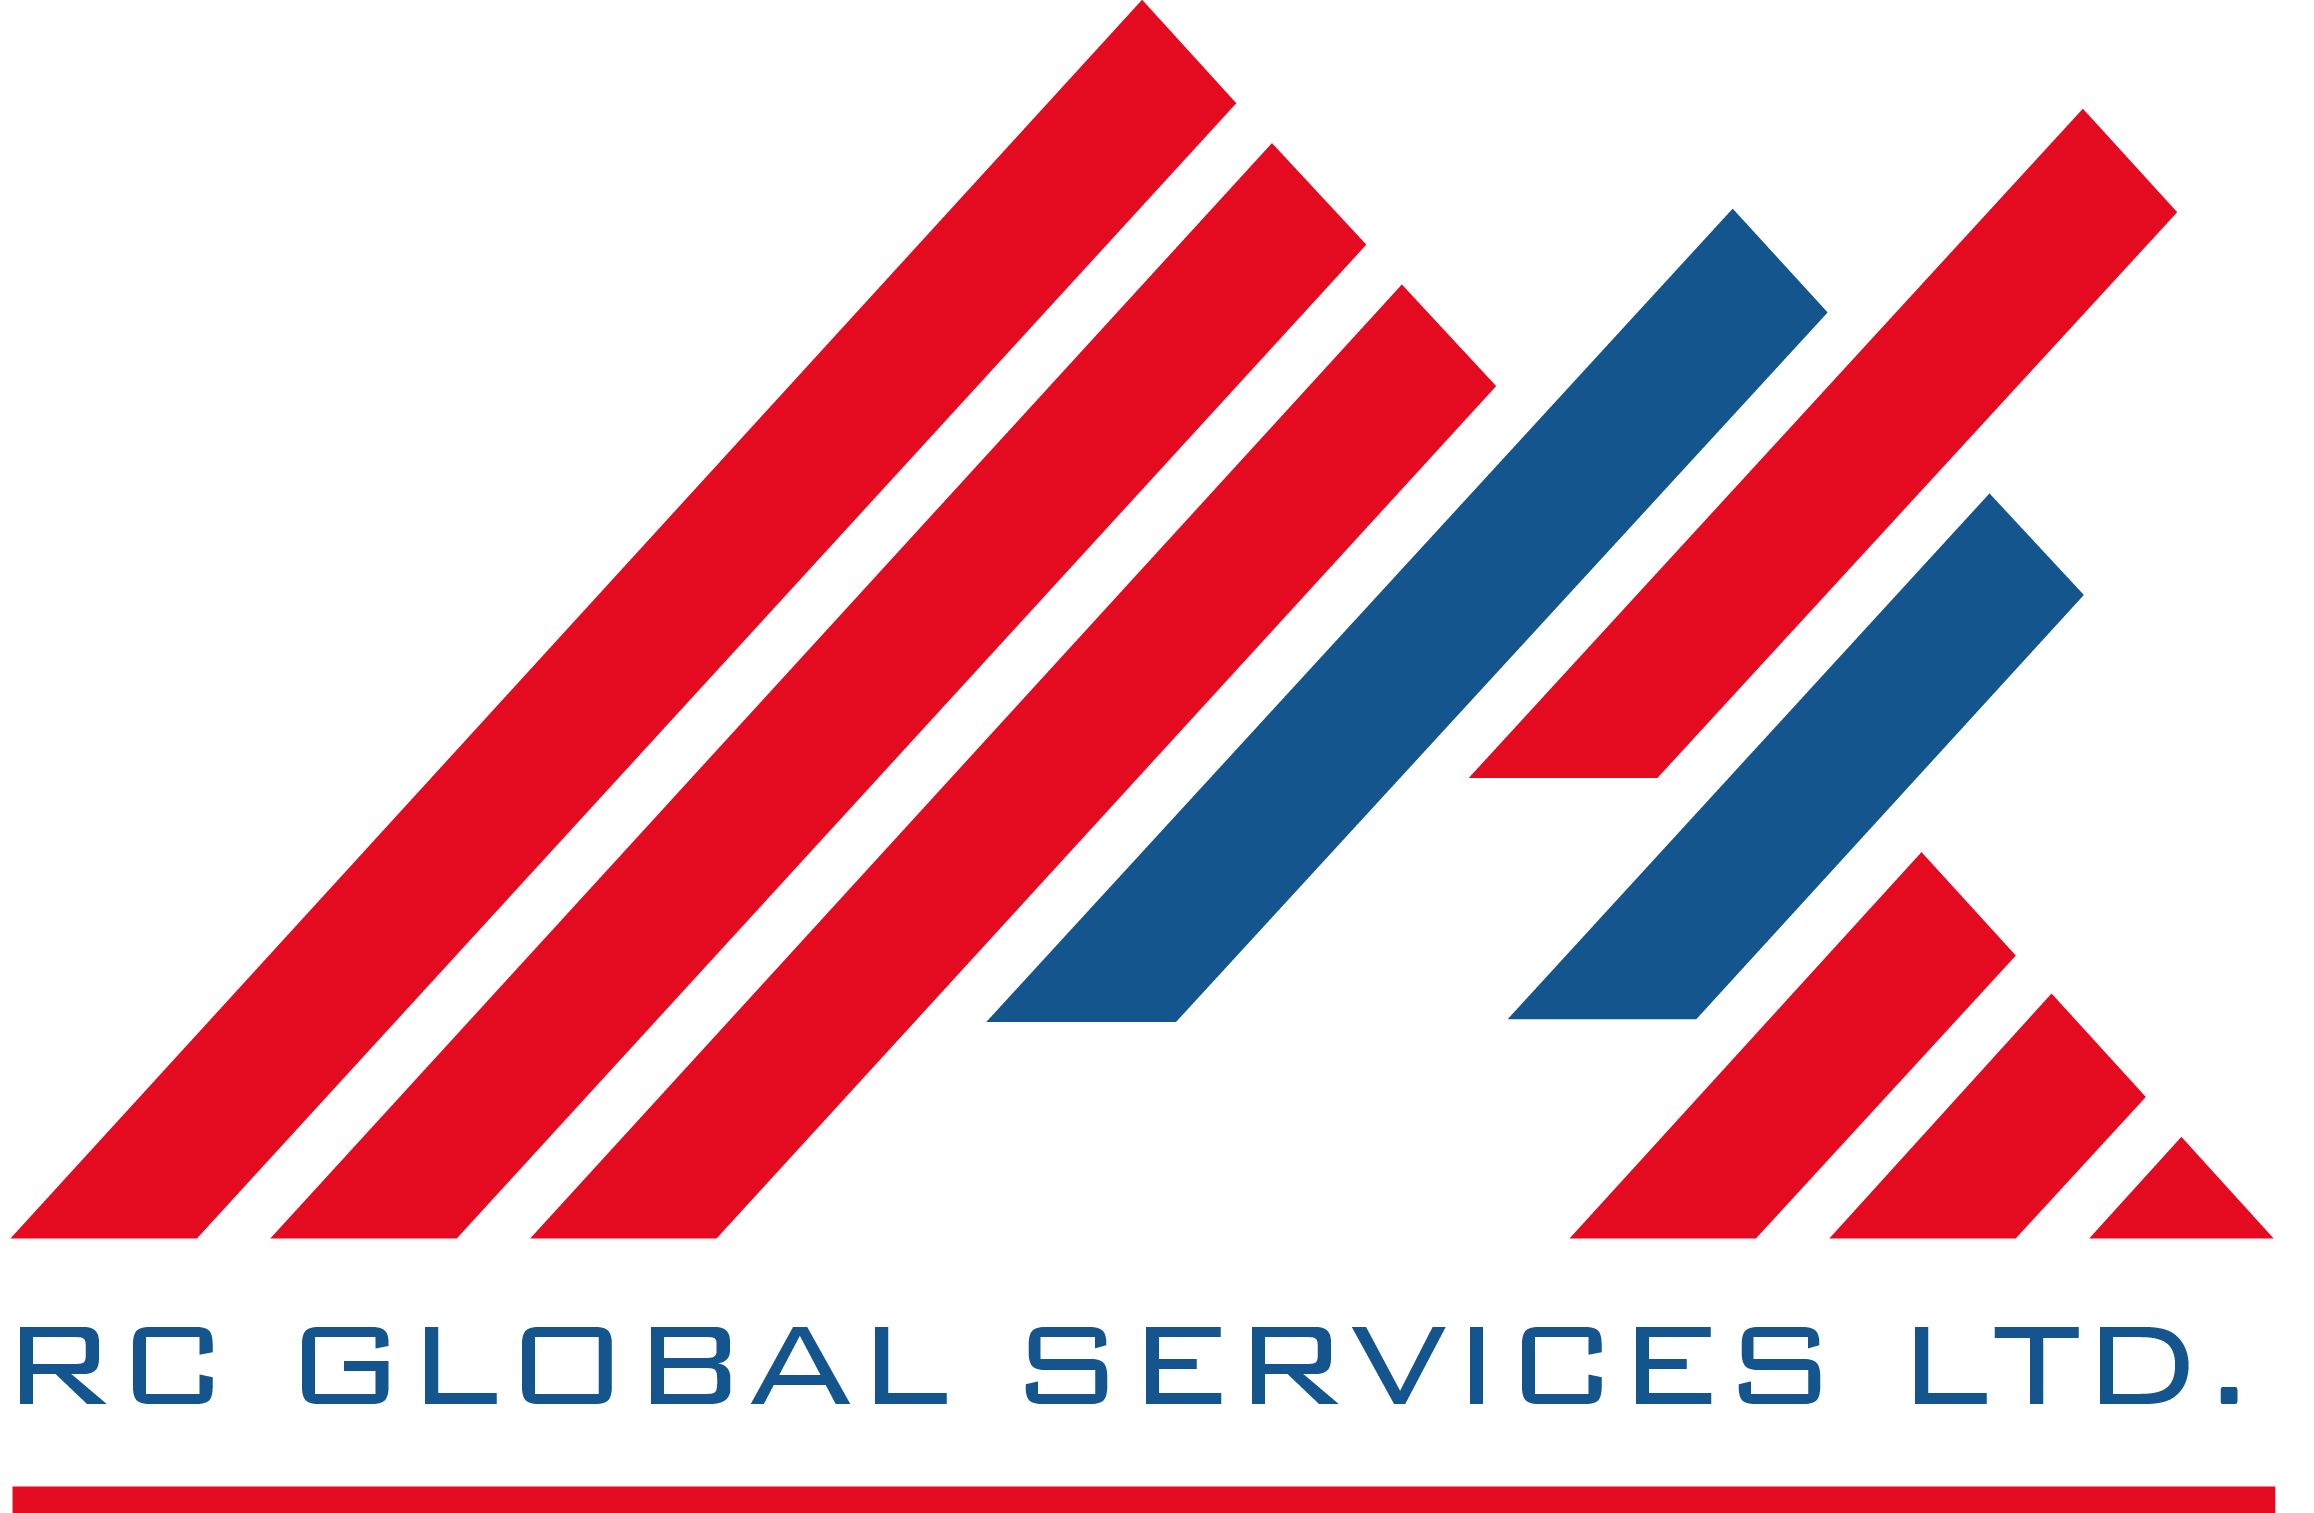 RC Global Services Limited